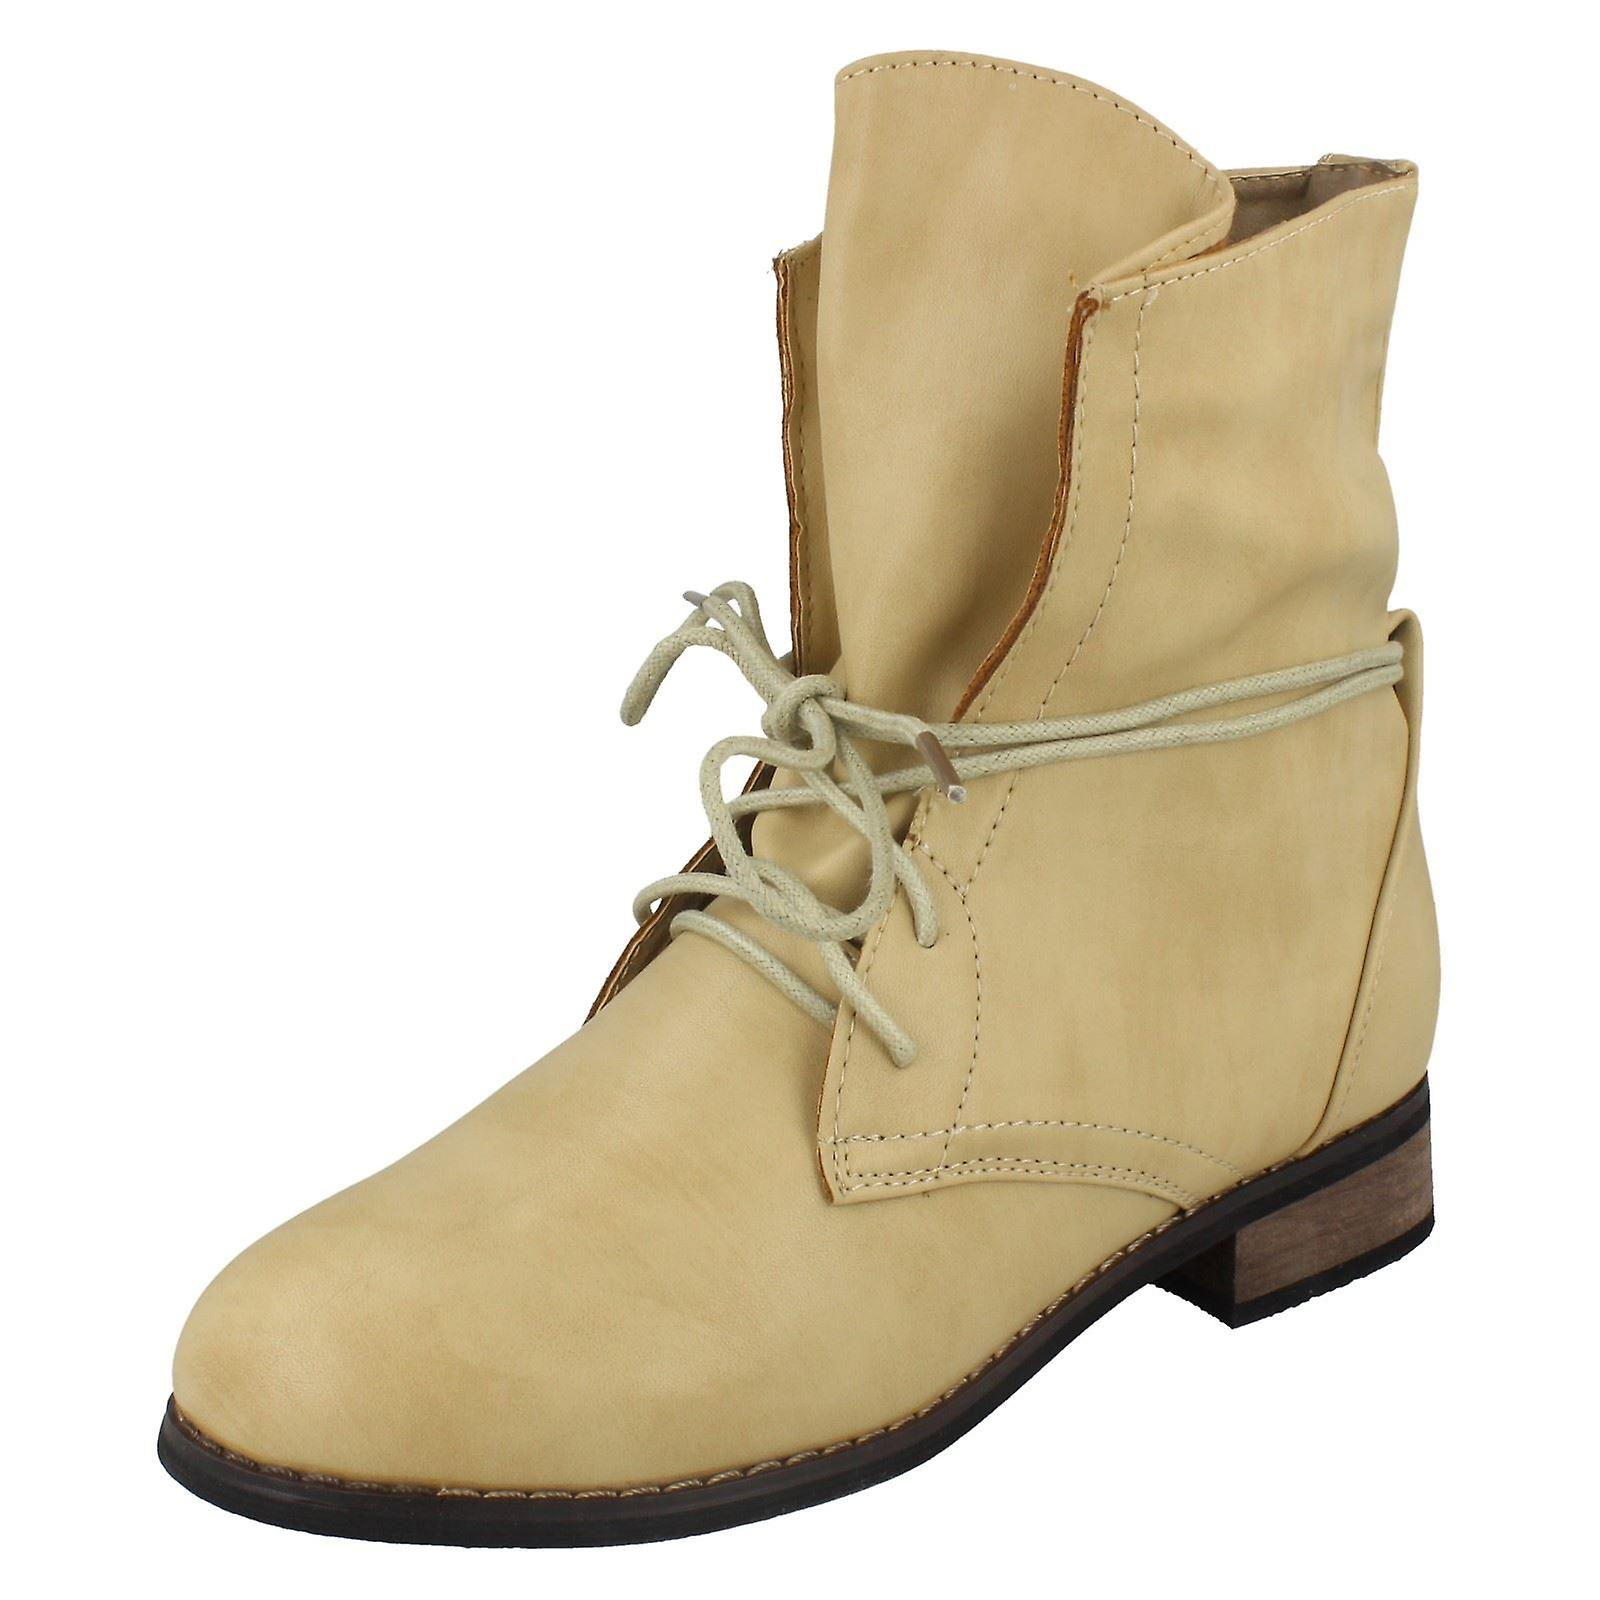 Ladies Spot On Low Heel Lace Up Ankle Boots sVQnZ